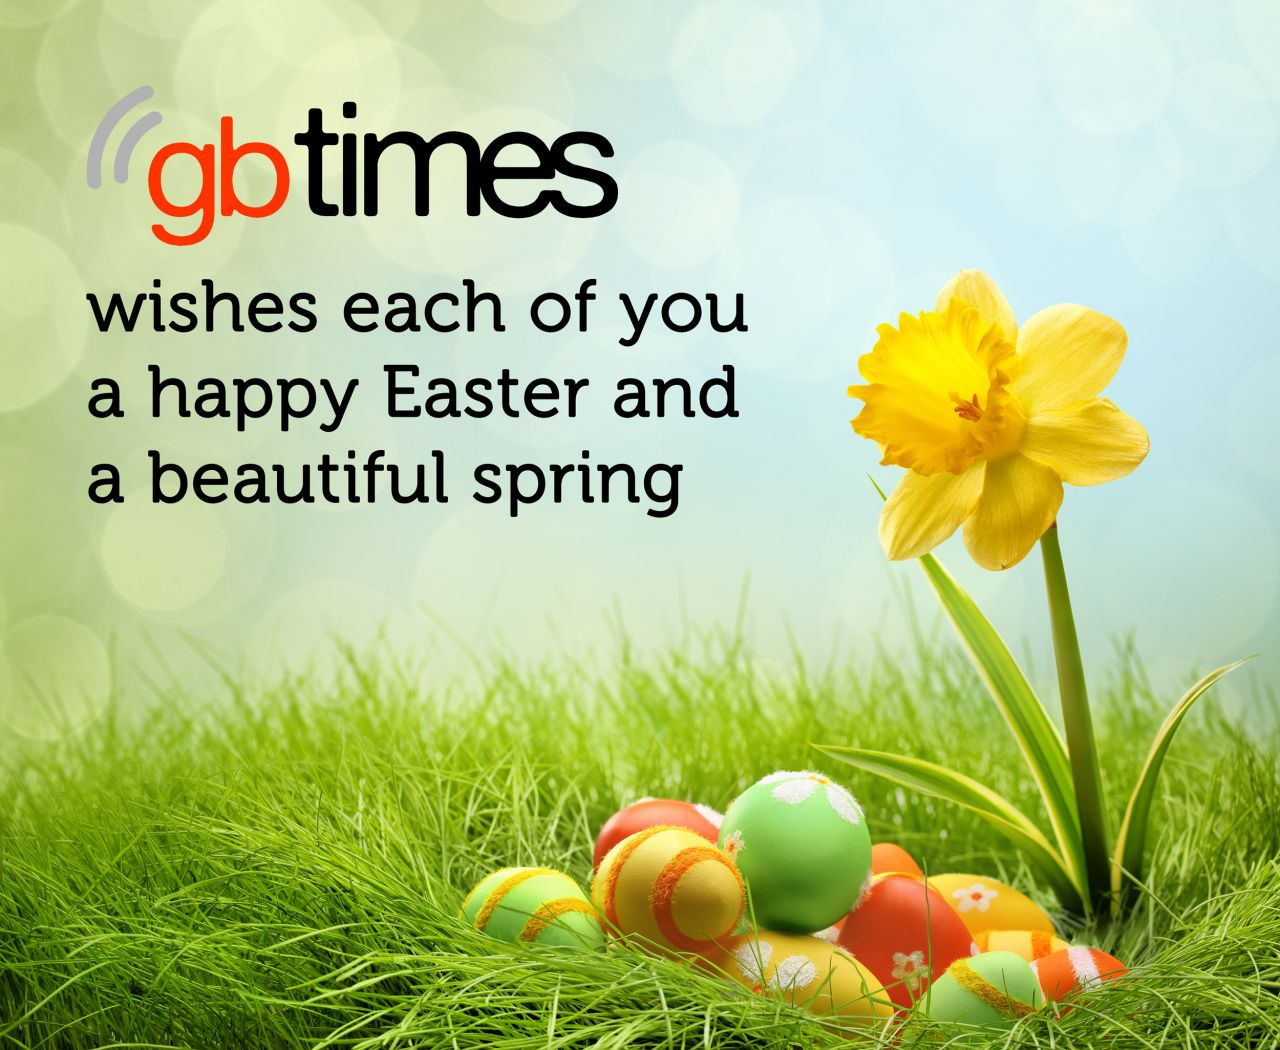 Easter and spring greetings to all of our readers gbtimes easter and spring greetings to all of our readers m4hsunfo